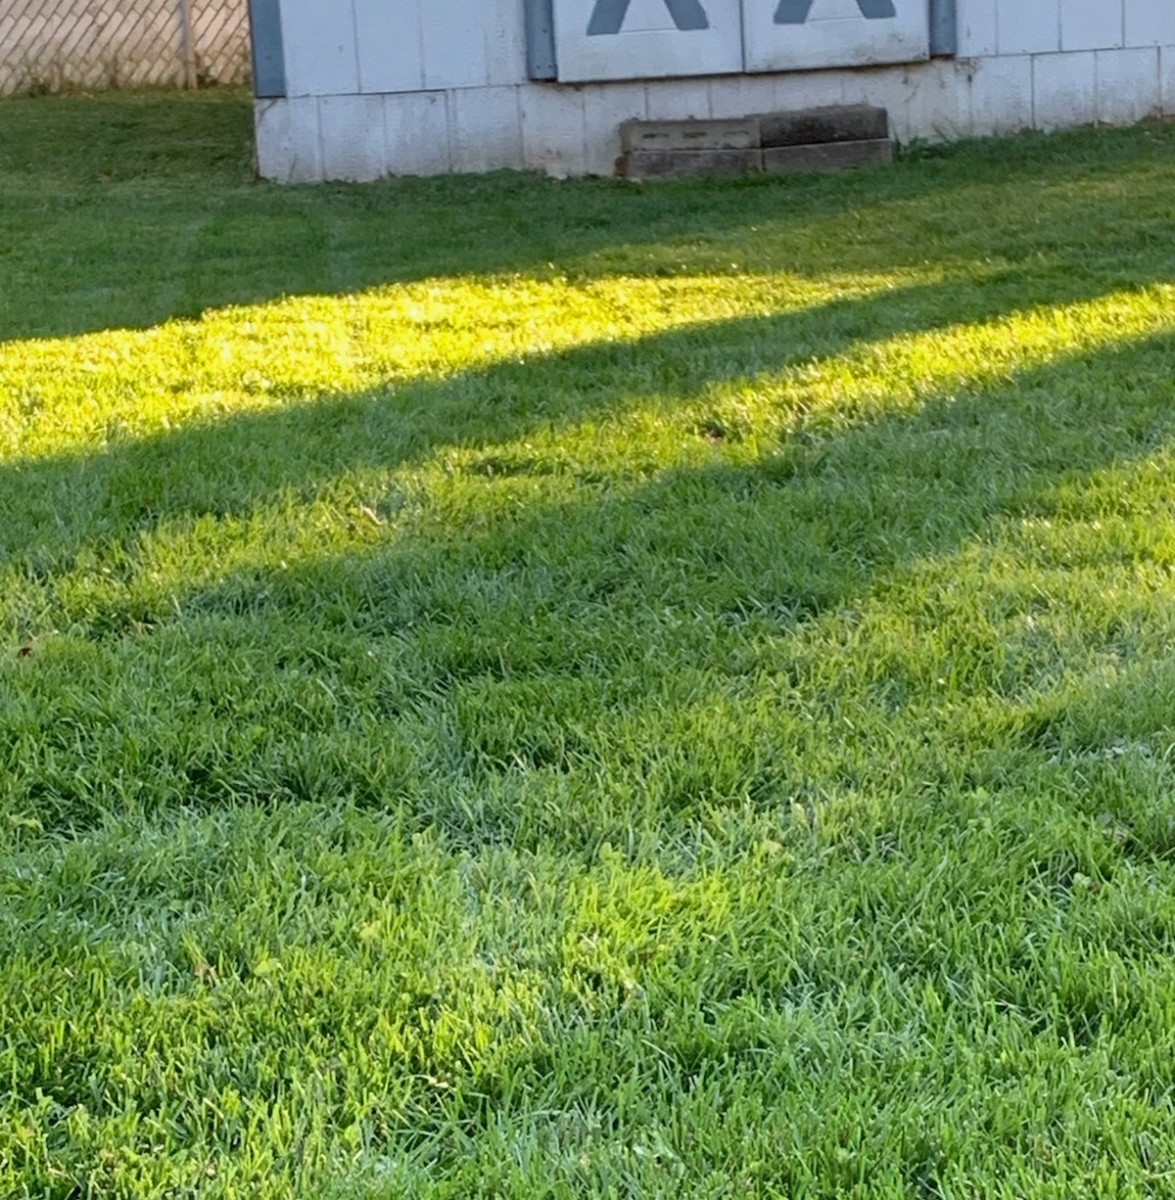 Lawn growing thicker and greener on a frosty morning after thatching and reseeding.